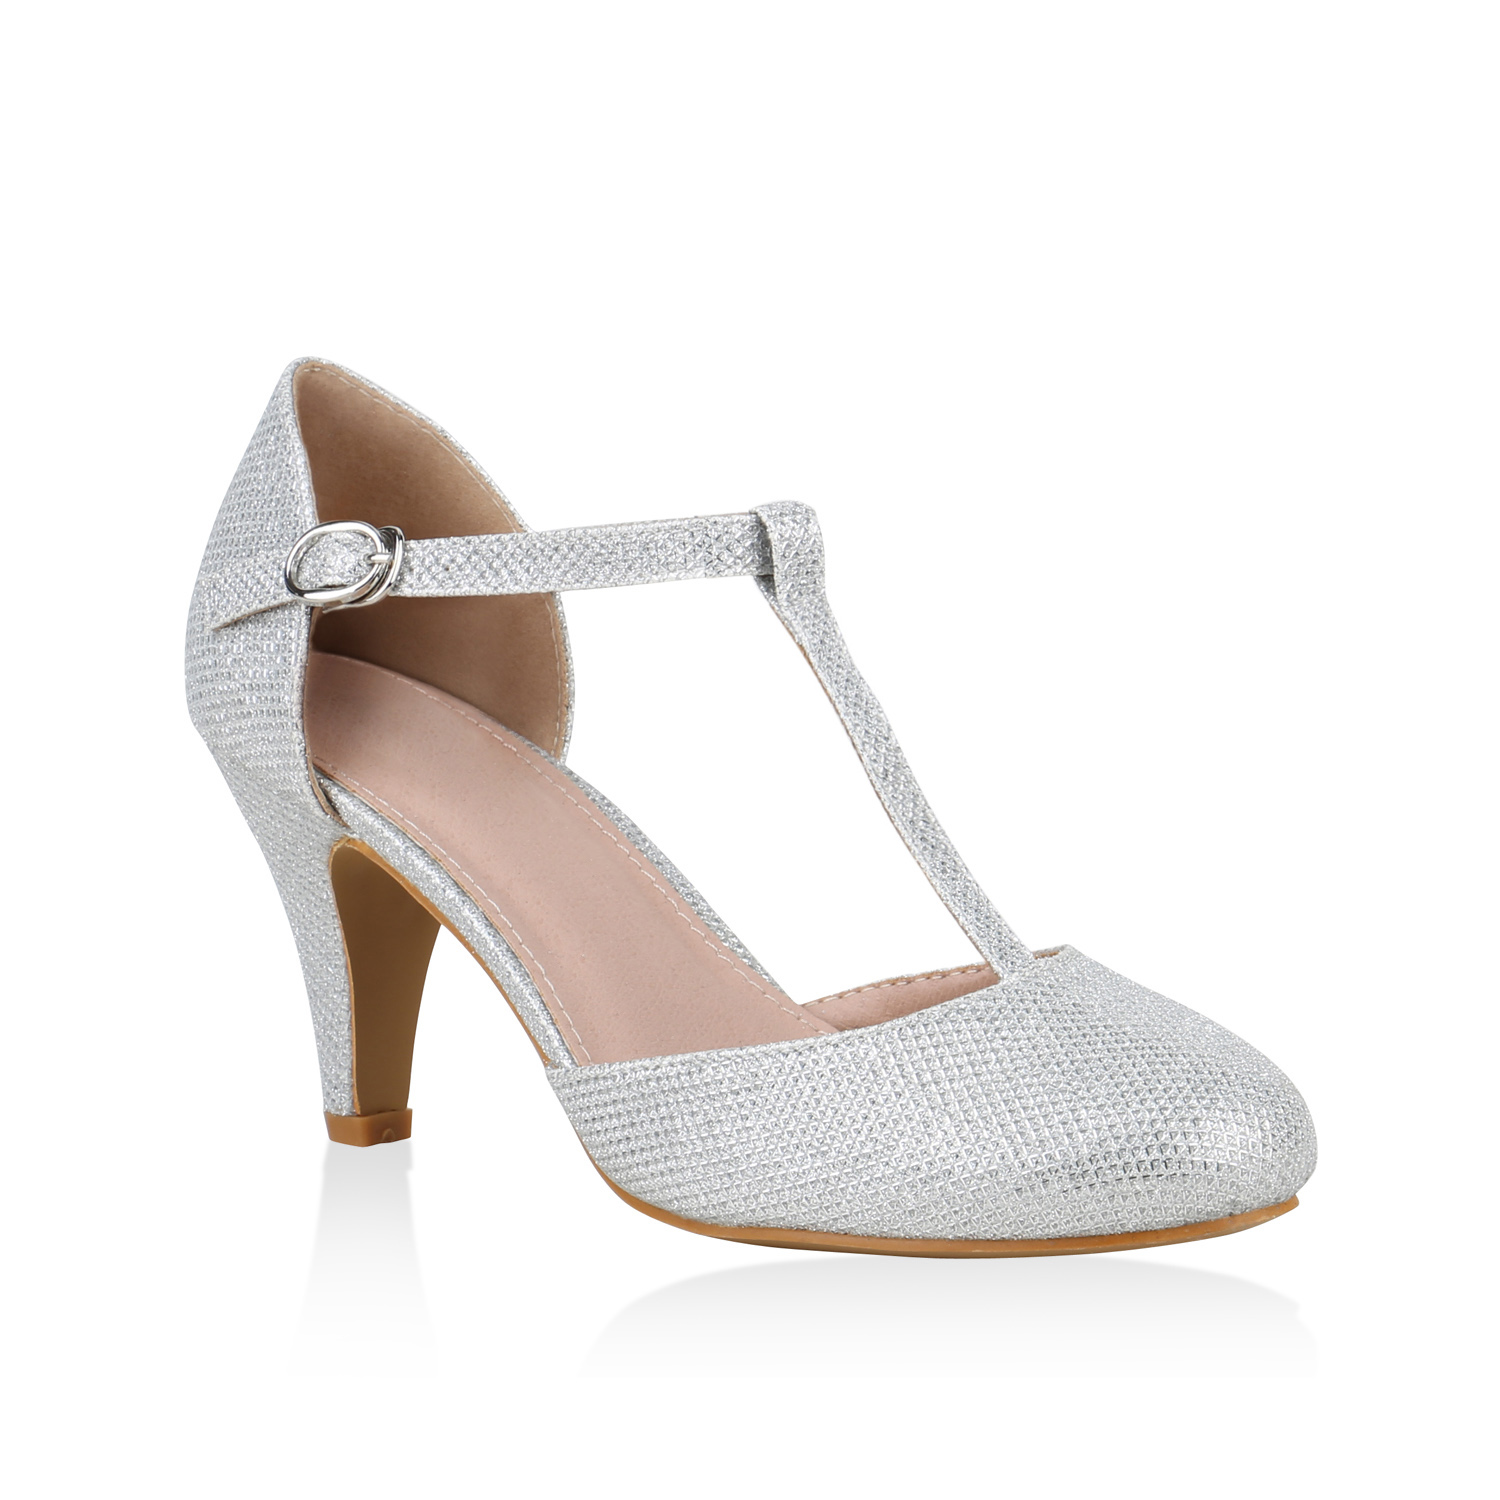 Pumps für Frauen - Damen Pumps Mary Janes Silber  - Onlineshop Stiefelparadies